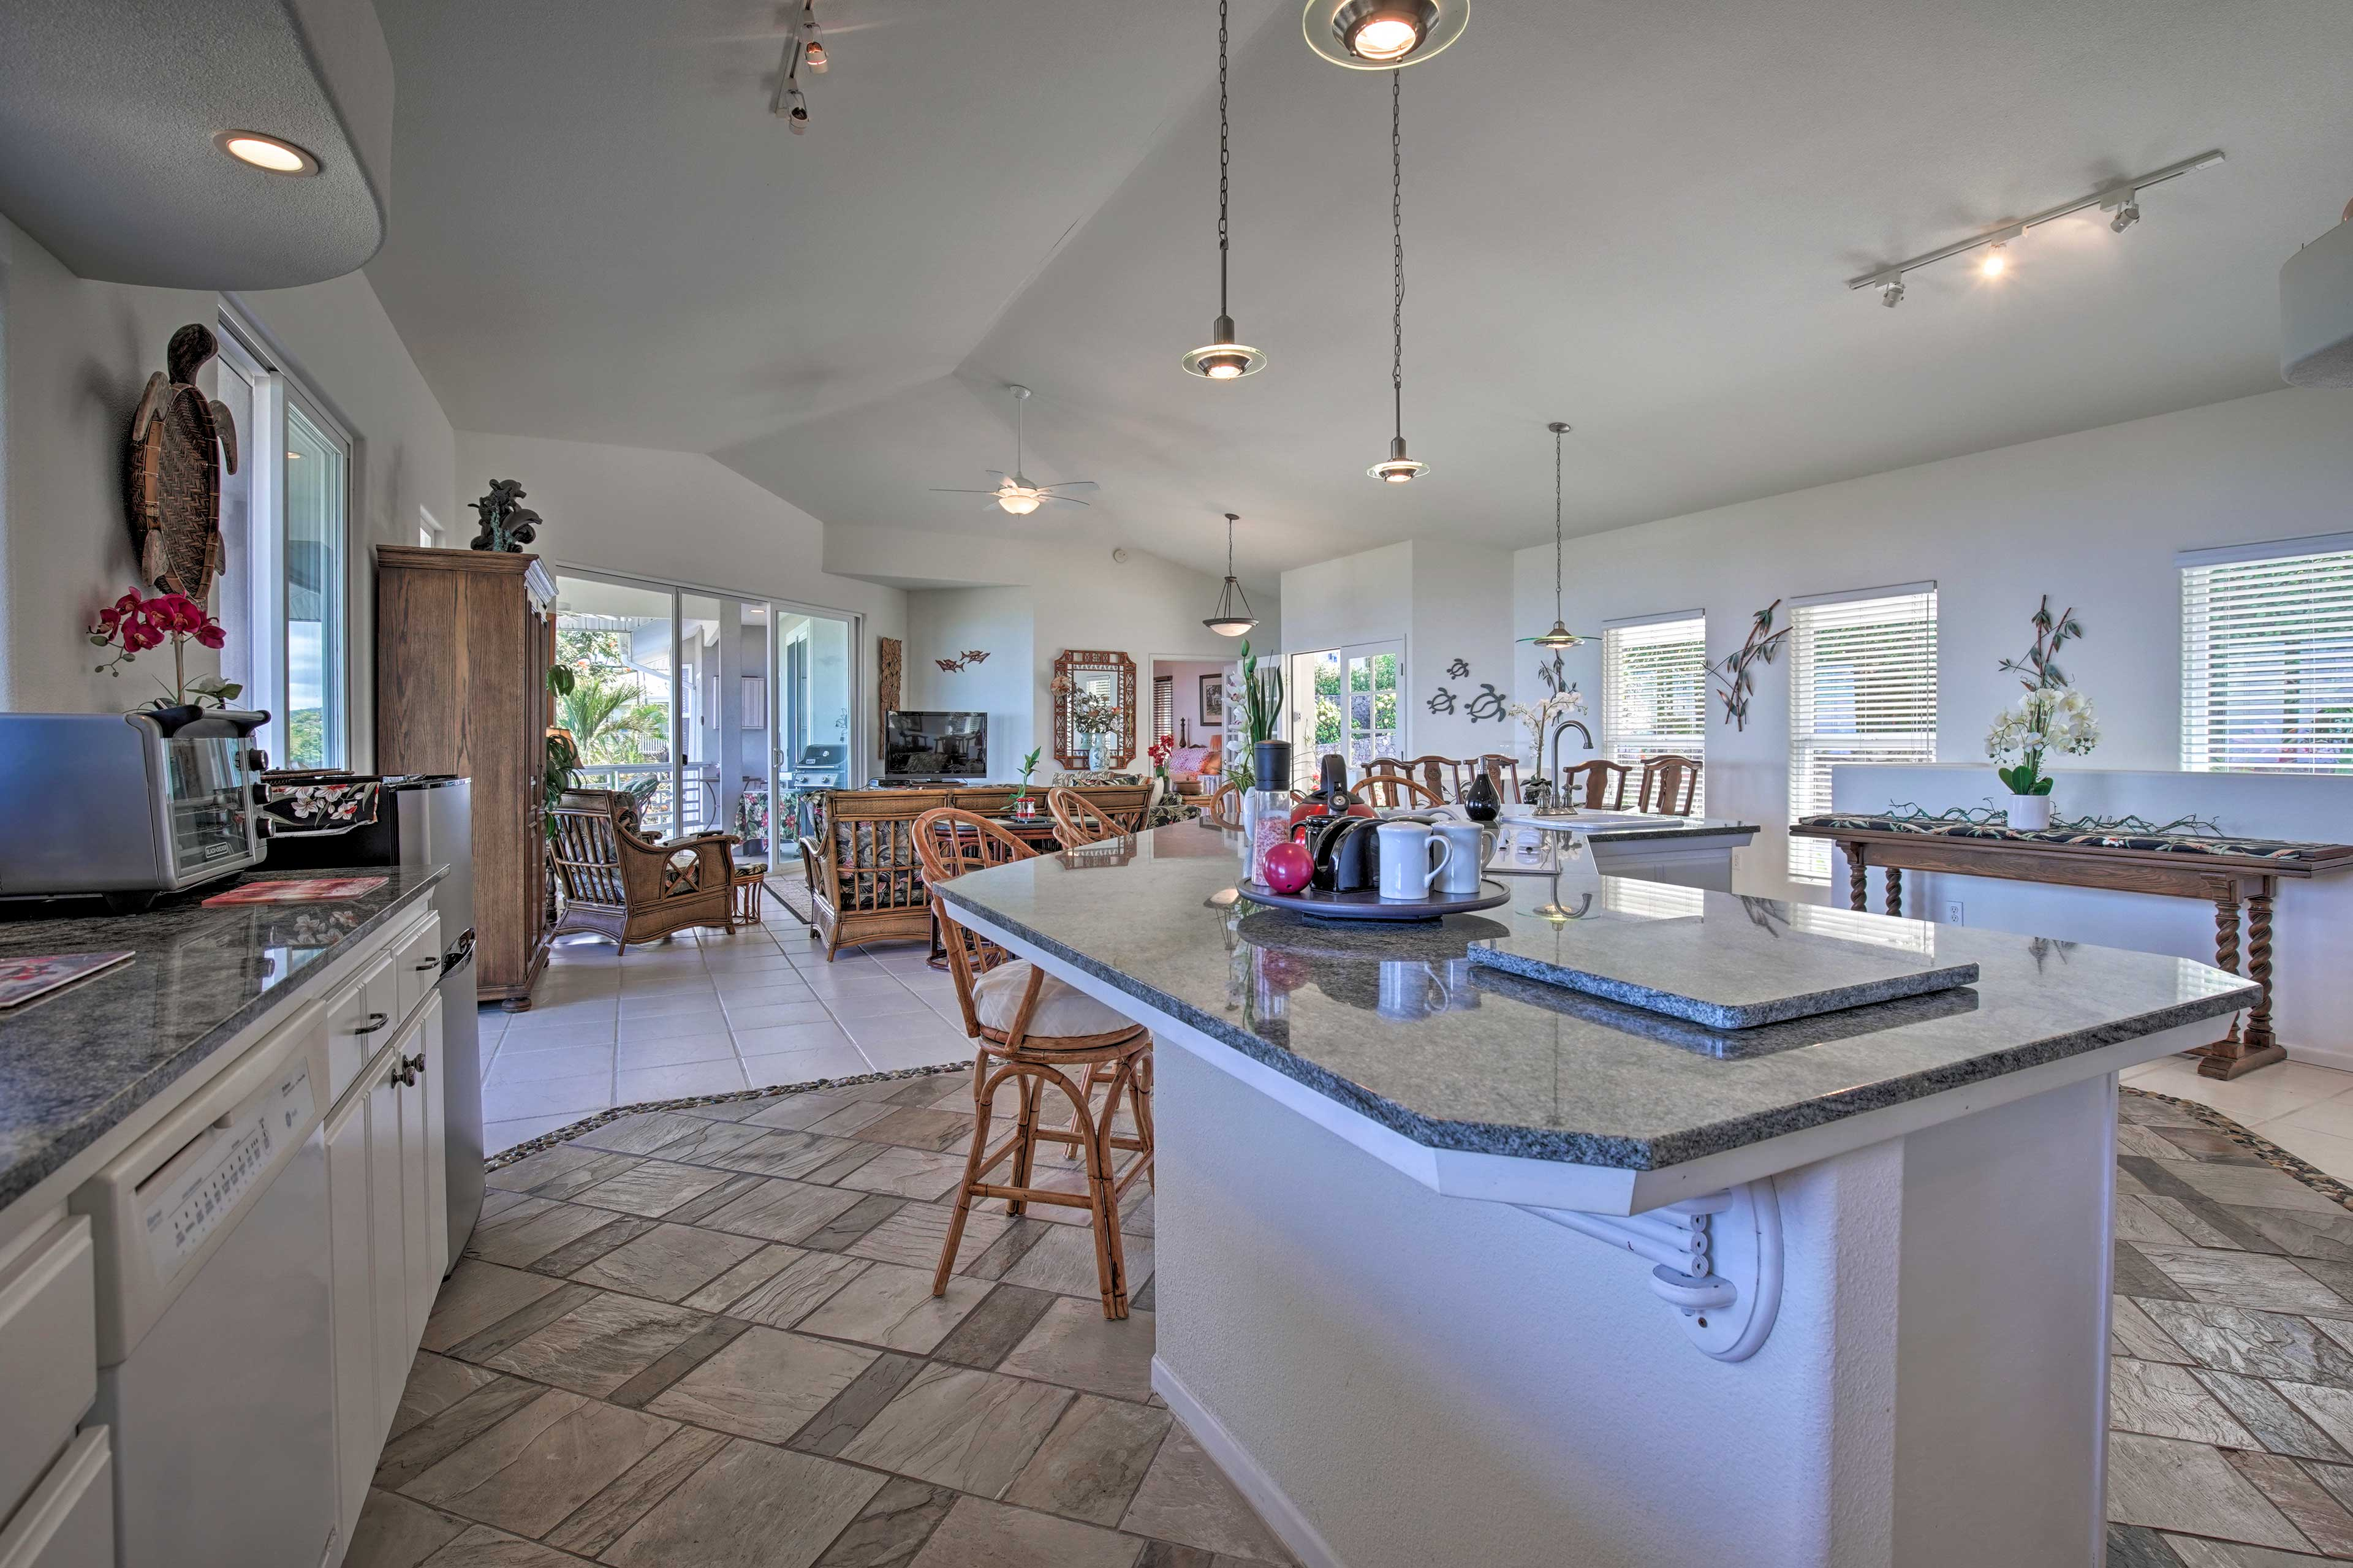 The chef can keep an eye on the whole group with this open-concept living space.